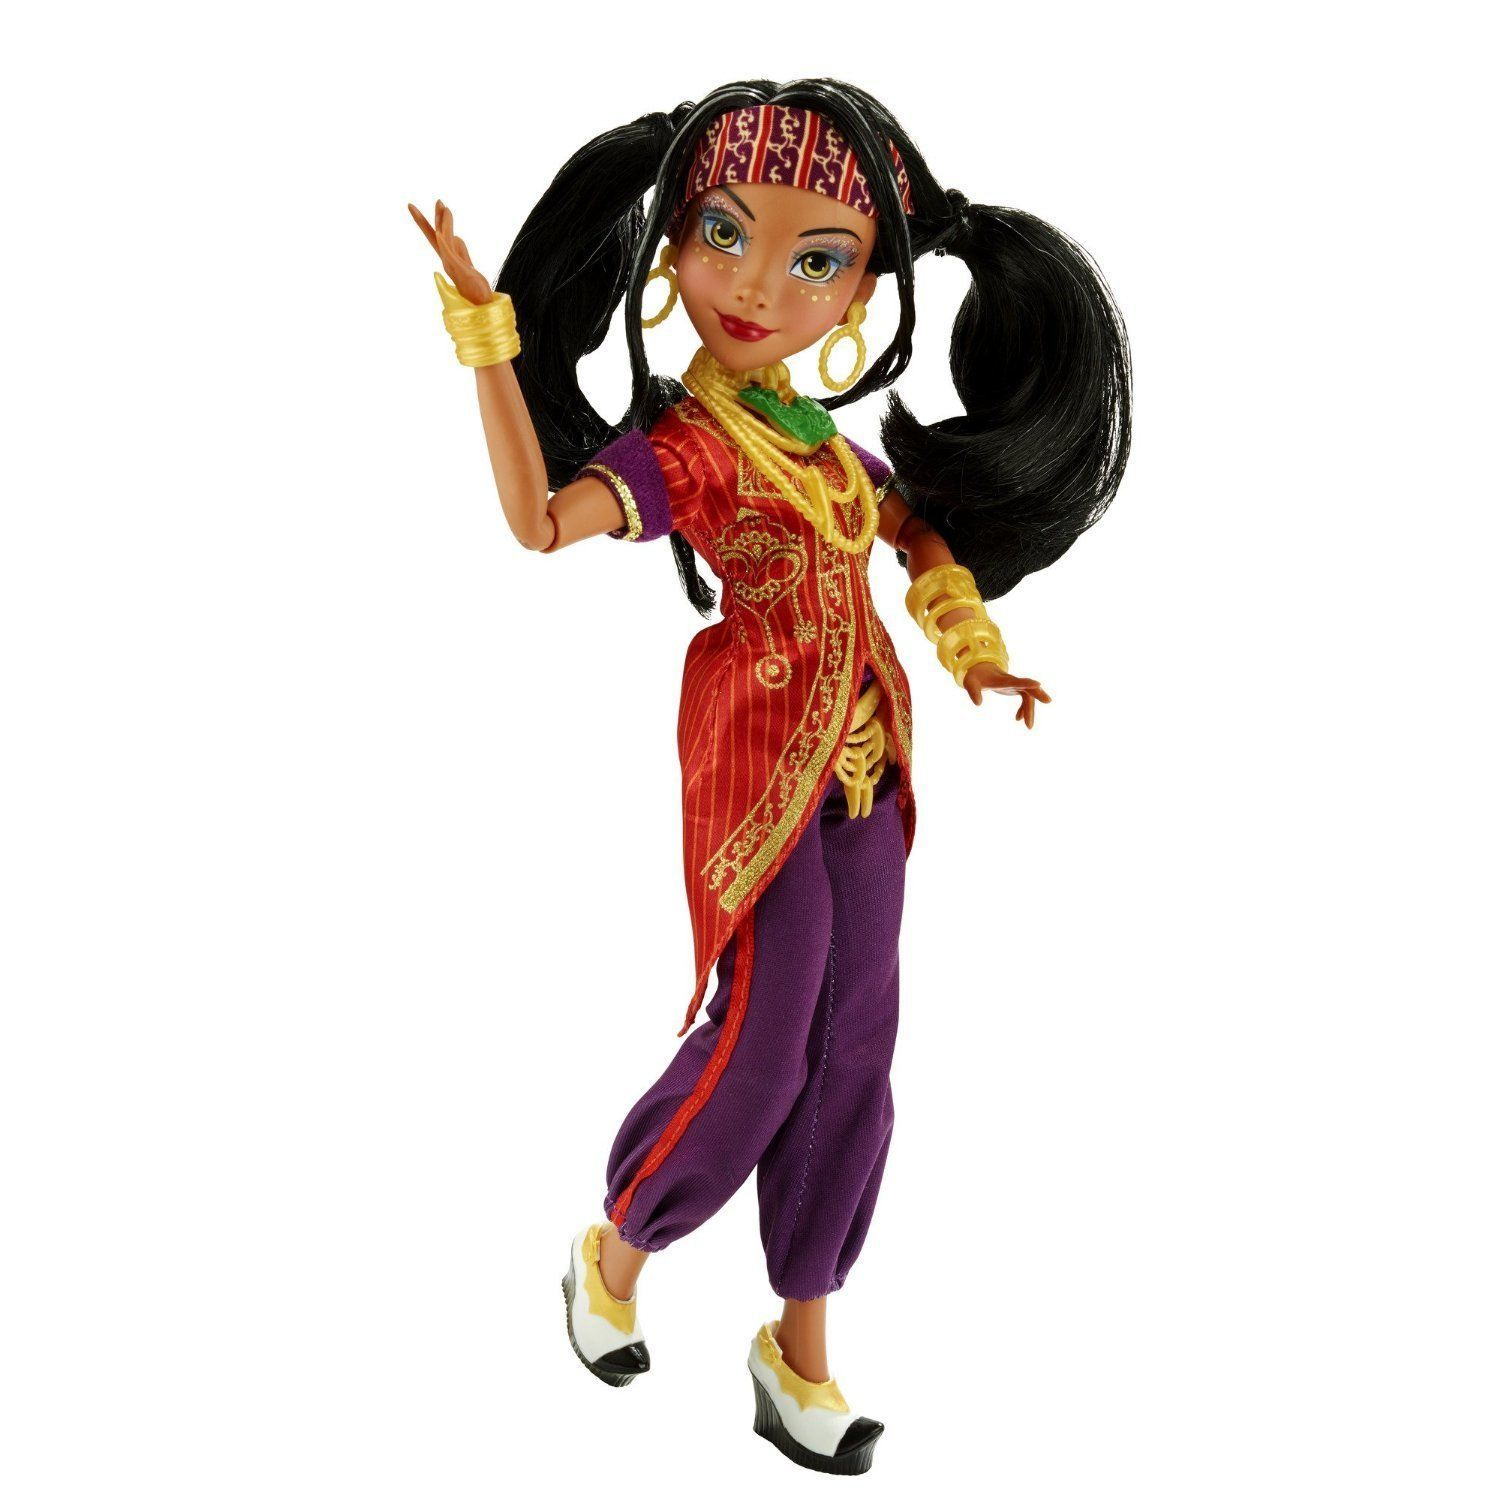 Image 0 of Disney Descendants Villain Genie Chic Freddie IE Doll Isle of the Lost